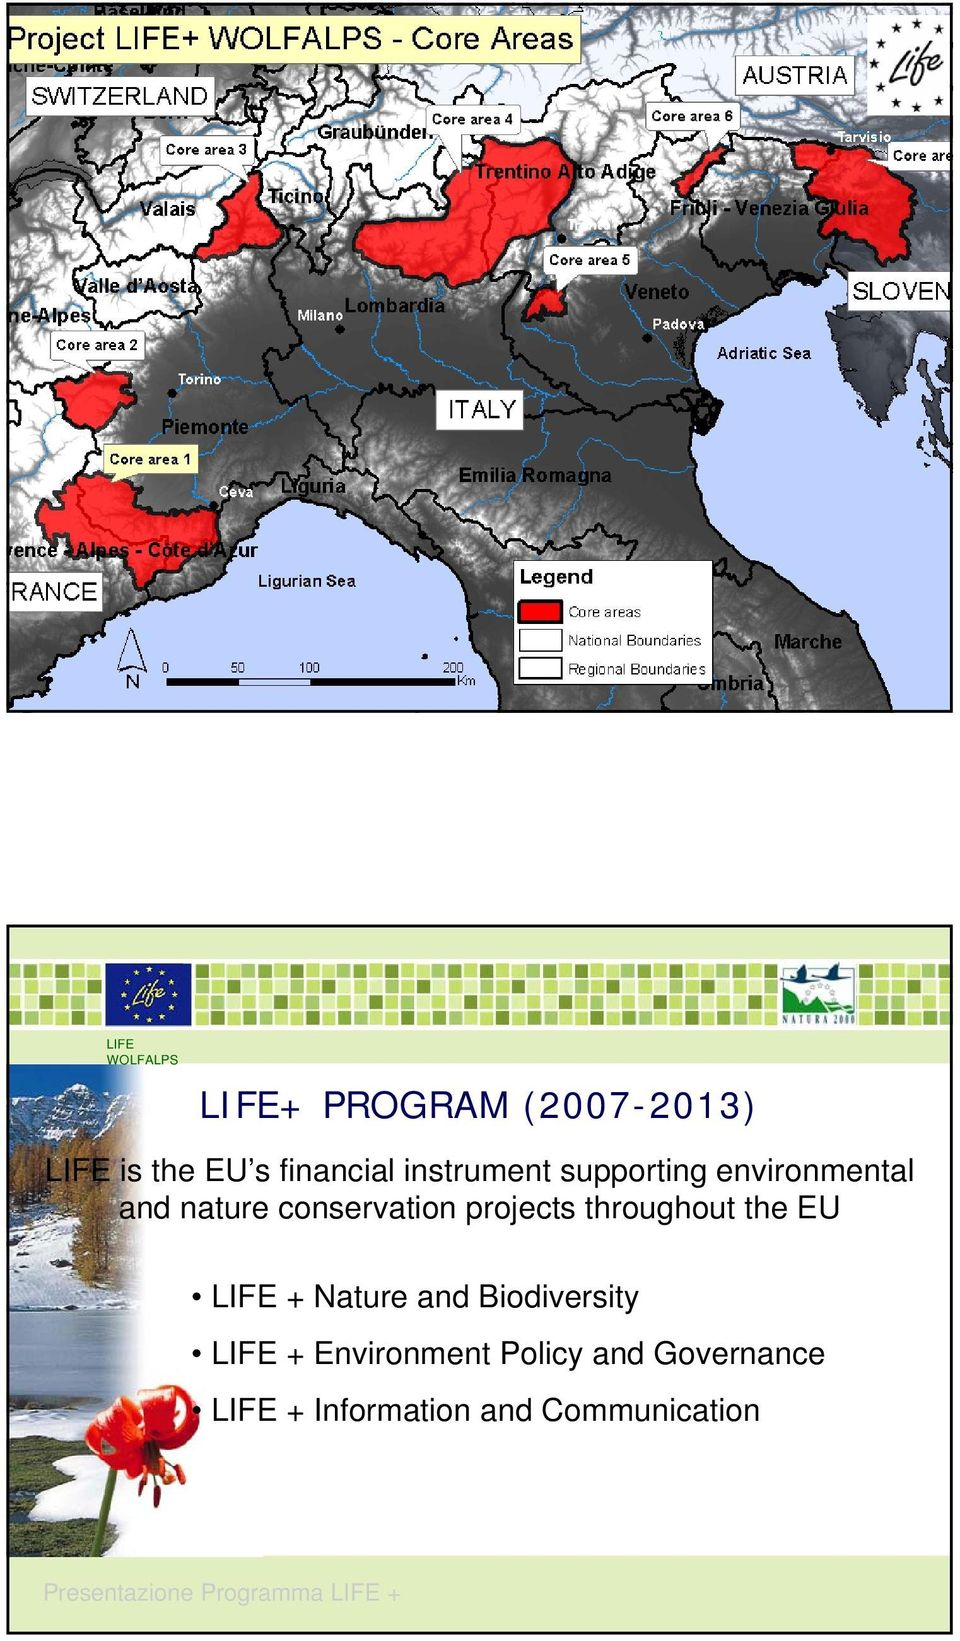 throughout the EU + Nature and Biodiversity + Environment